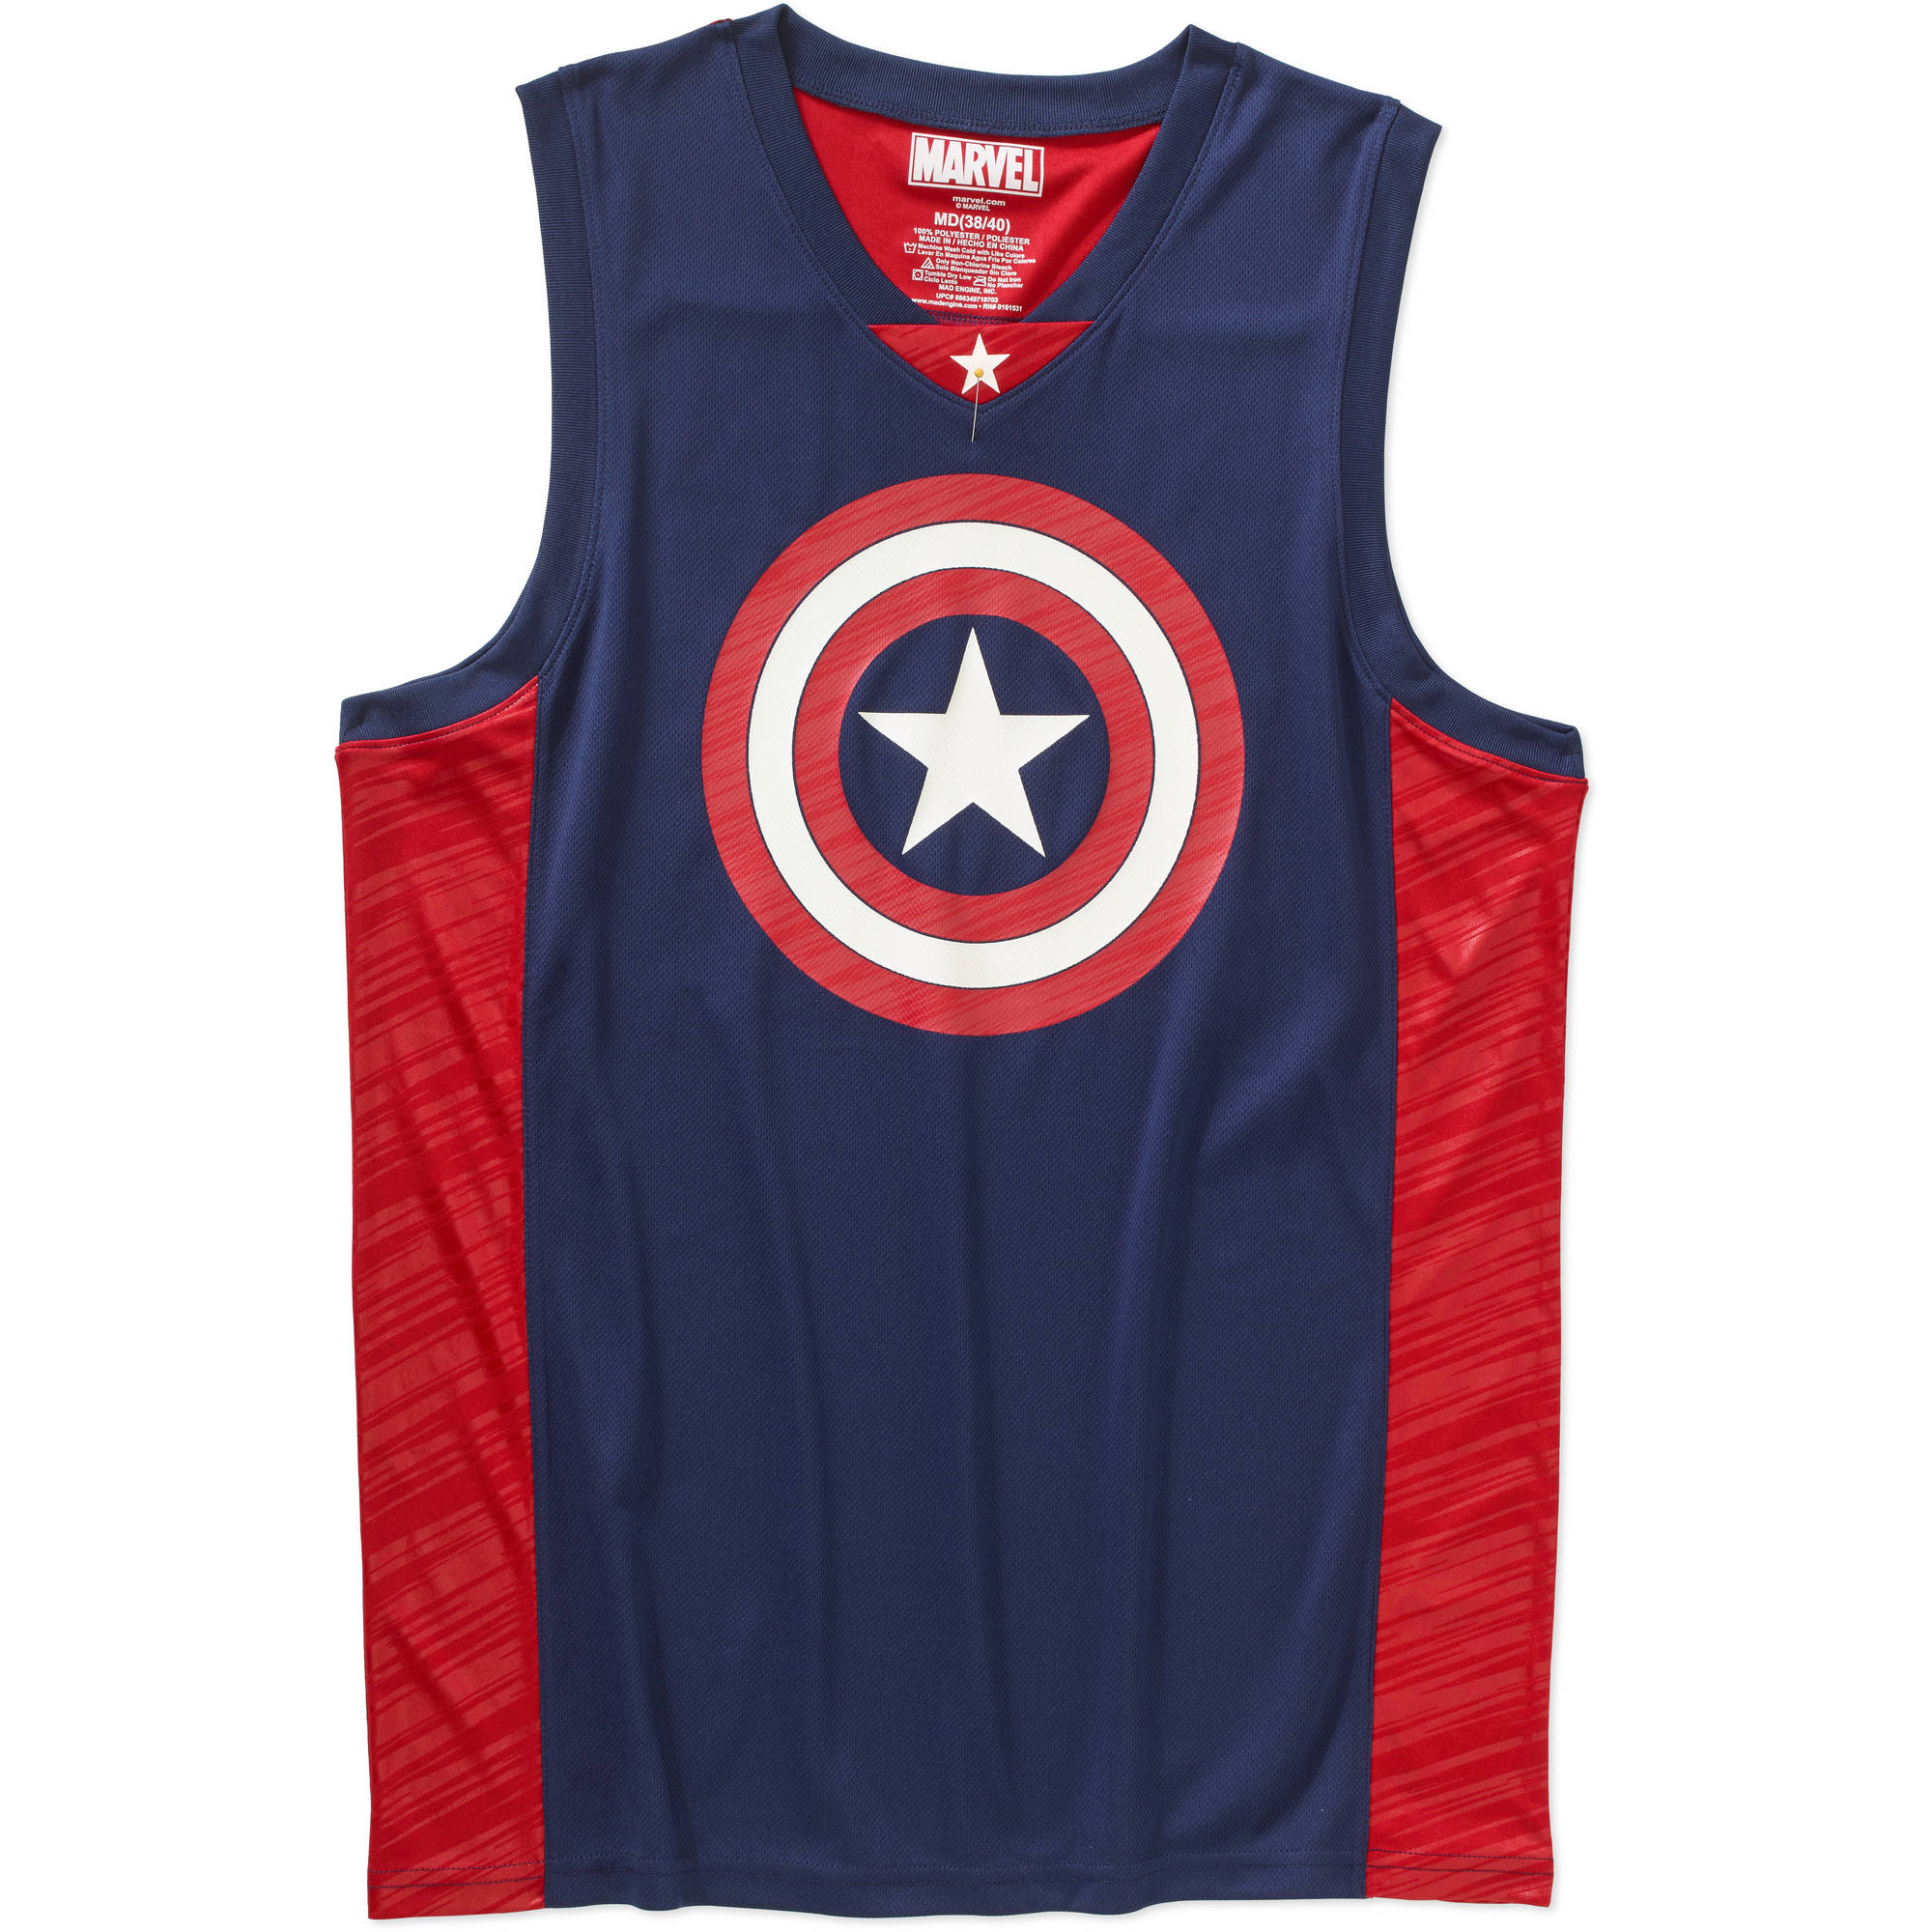 Captain America Mens Basketball Jersey Tank